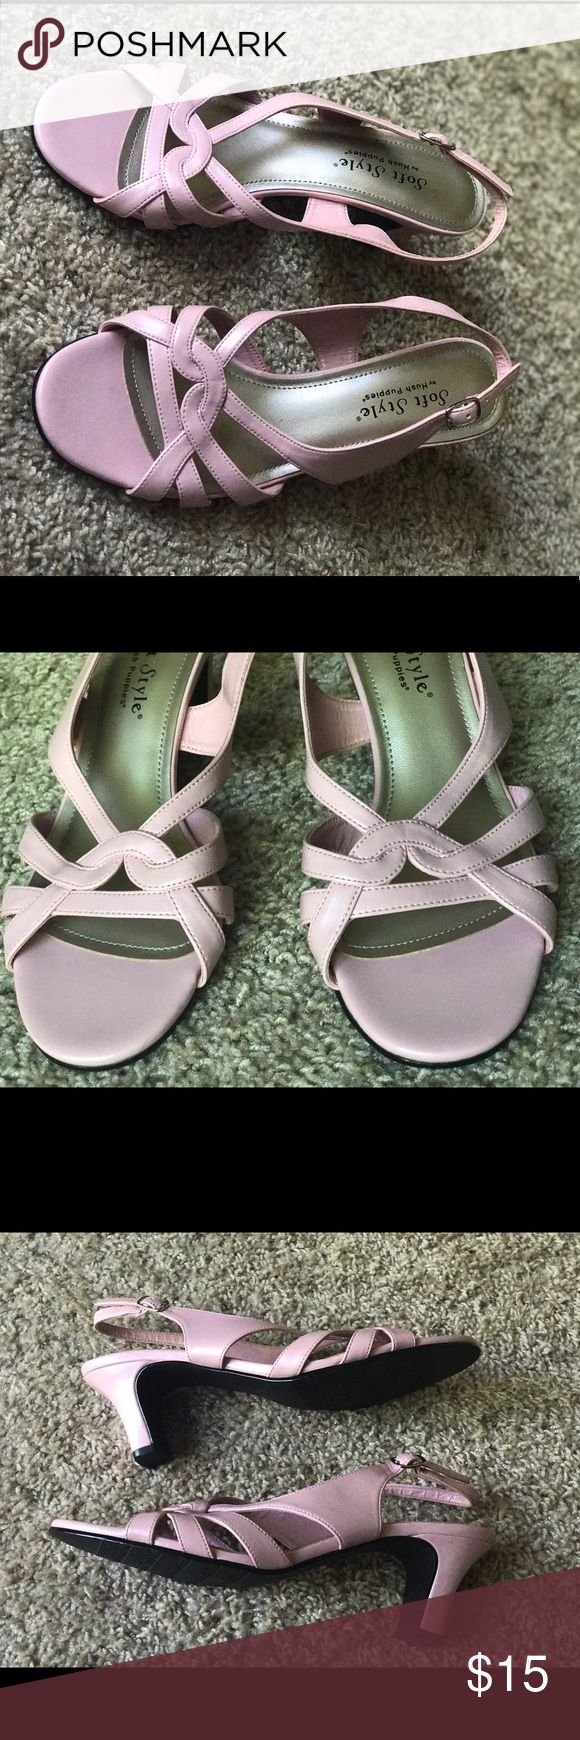 Cute Hush Puppies Soft Style Sandals They are really cute and comfortable sandals. Too bad I gained significant weight. I used this just to wedding (2-3 times). The heels are 2.5 inches, as you can see from the picts. They have some defect on the heels Hush Puppies Shoes Sandals